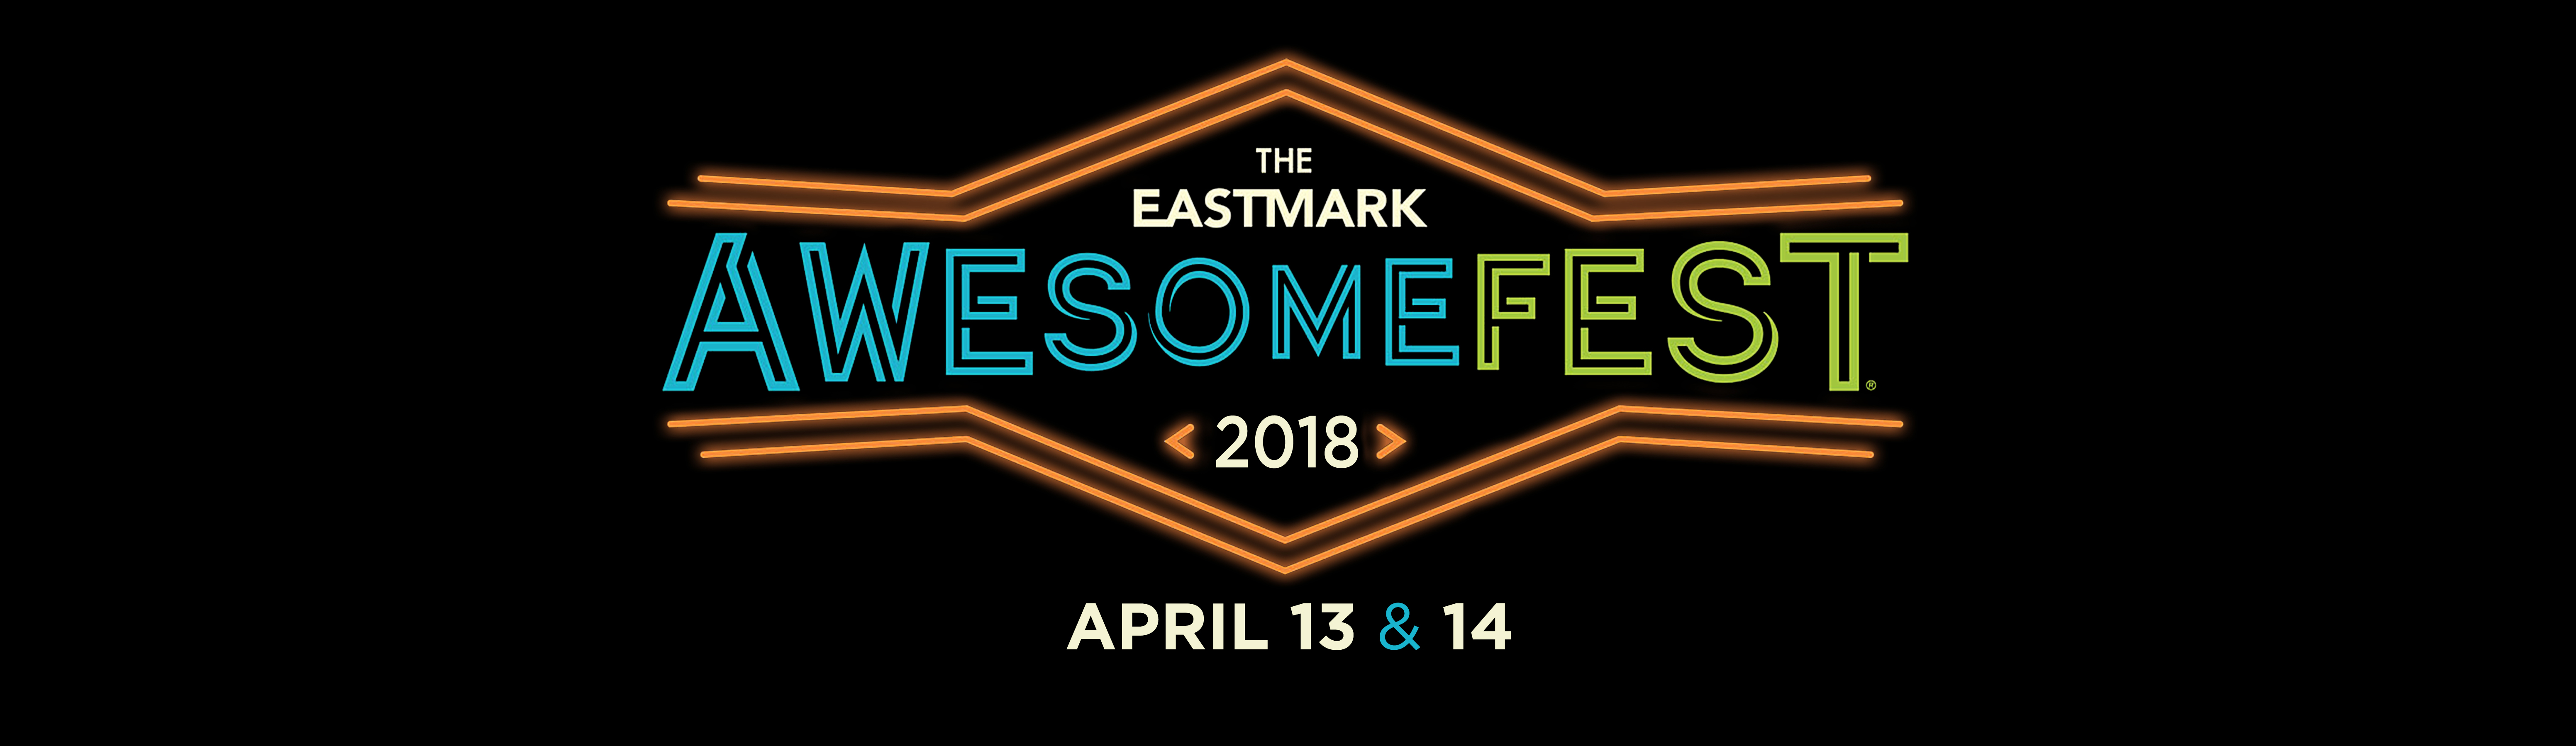 AsweomeFest 2018 schedule announced